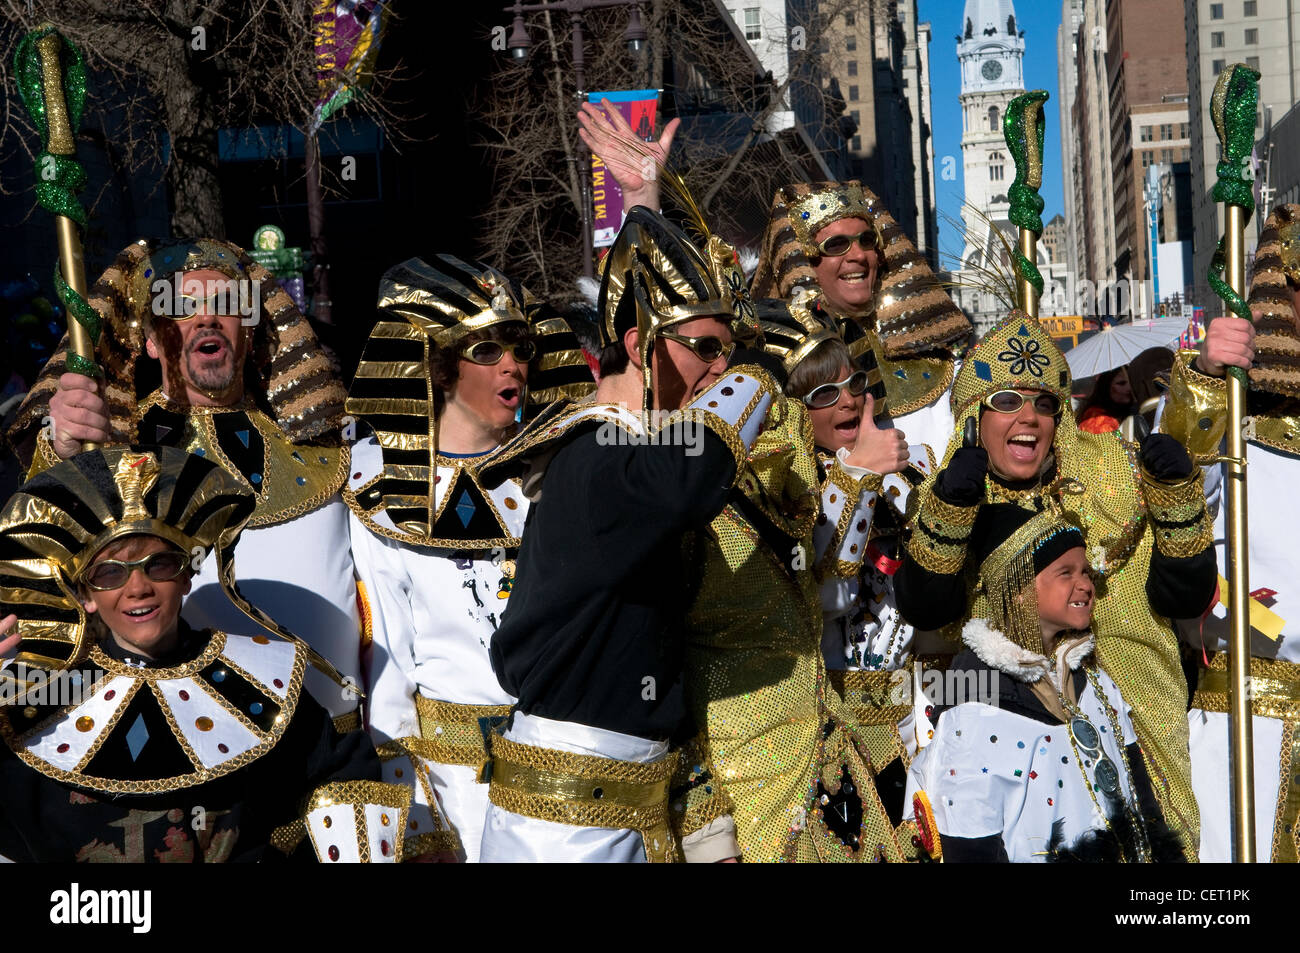 Mummers parade on New year's day in Philadelphia. - Stock Image